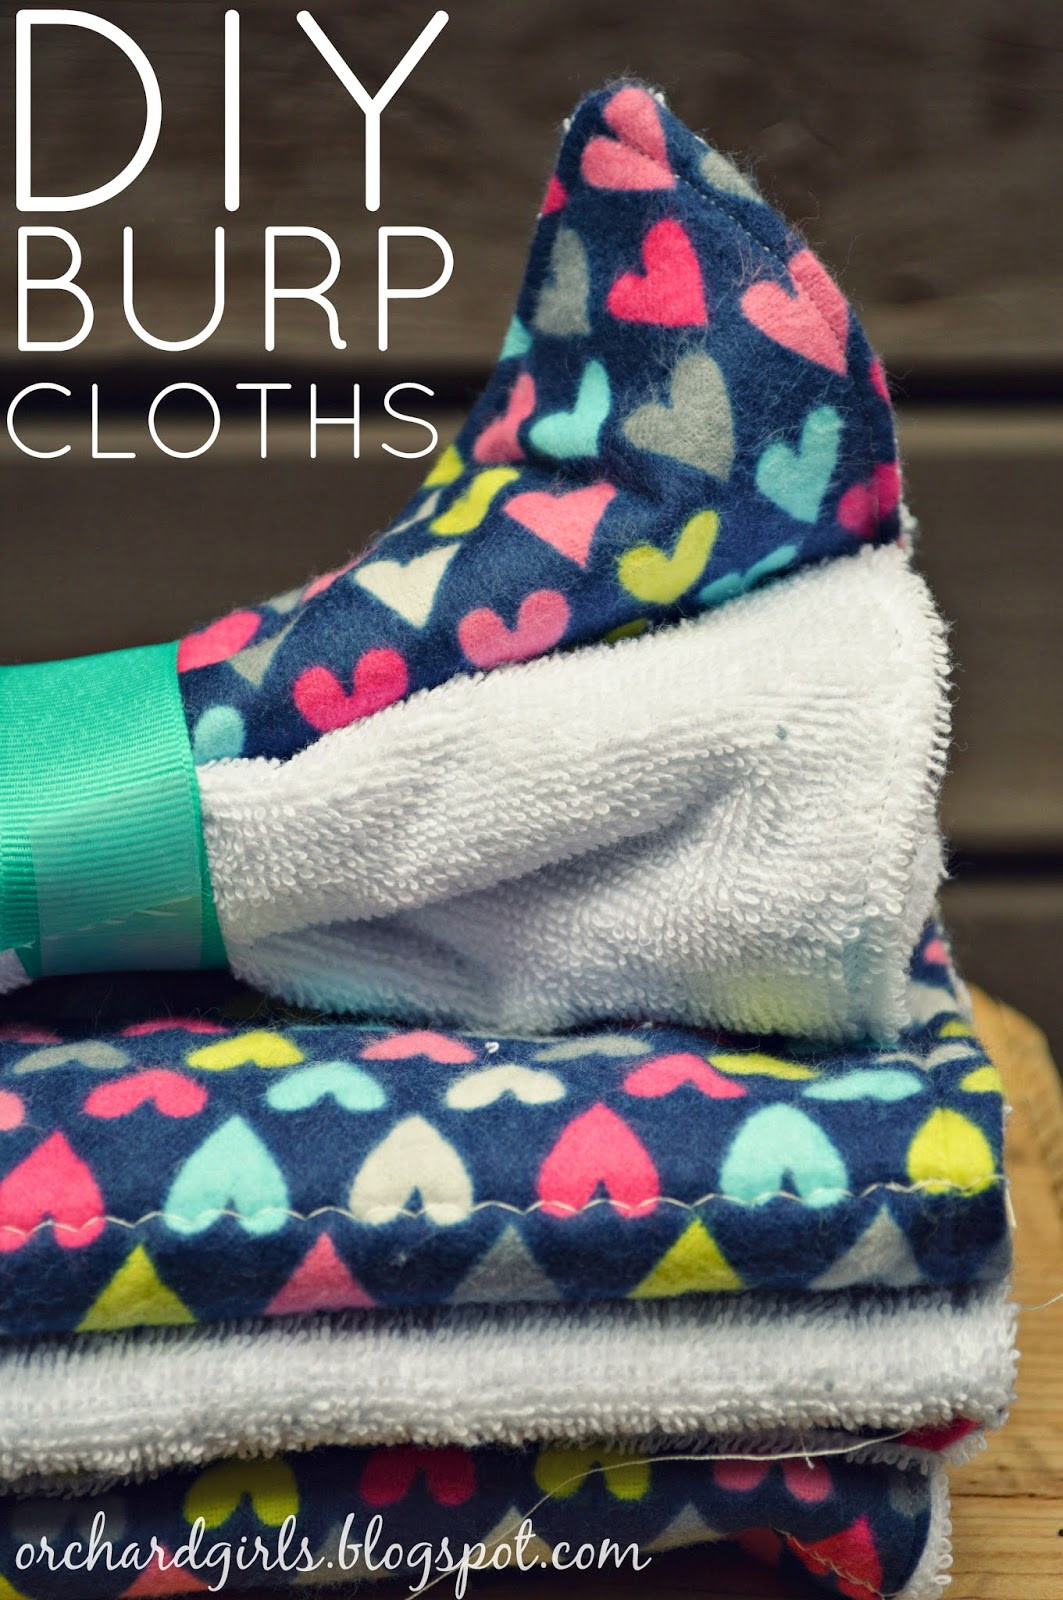 Best ideas about Baby Burp Cloths DIY . Save or Pin Orchard Girls DIY Baby Burp Cloths Now.